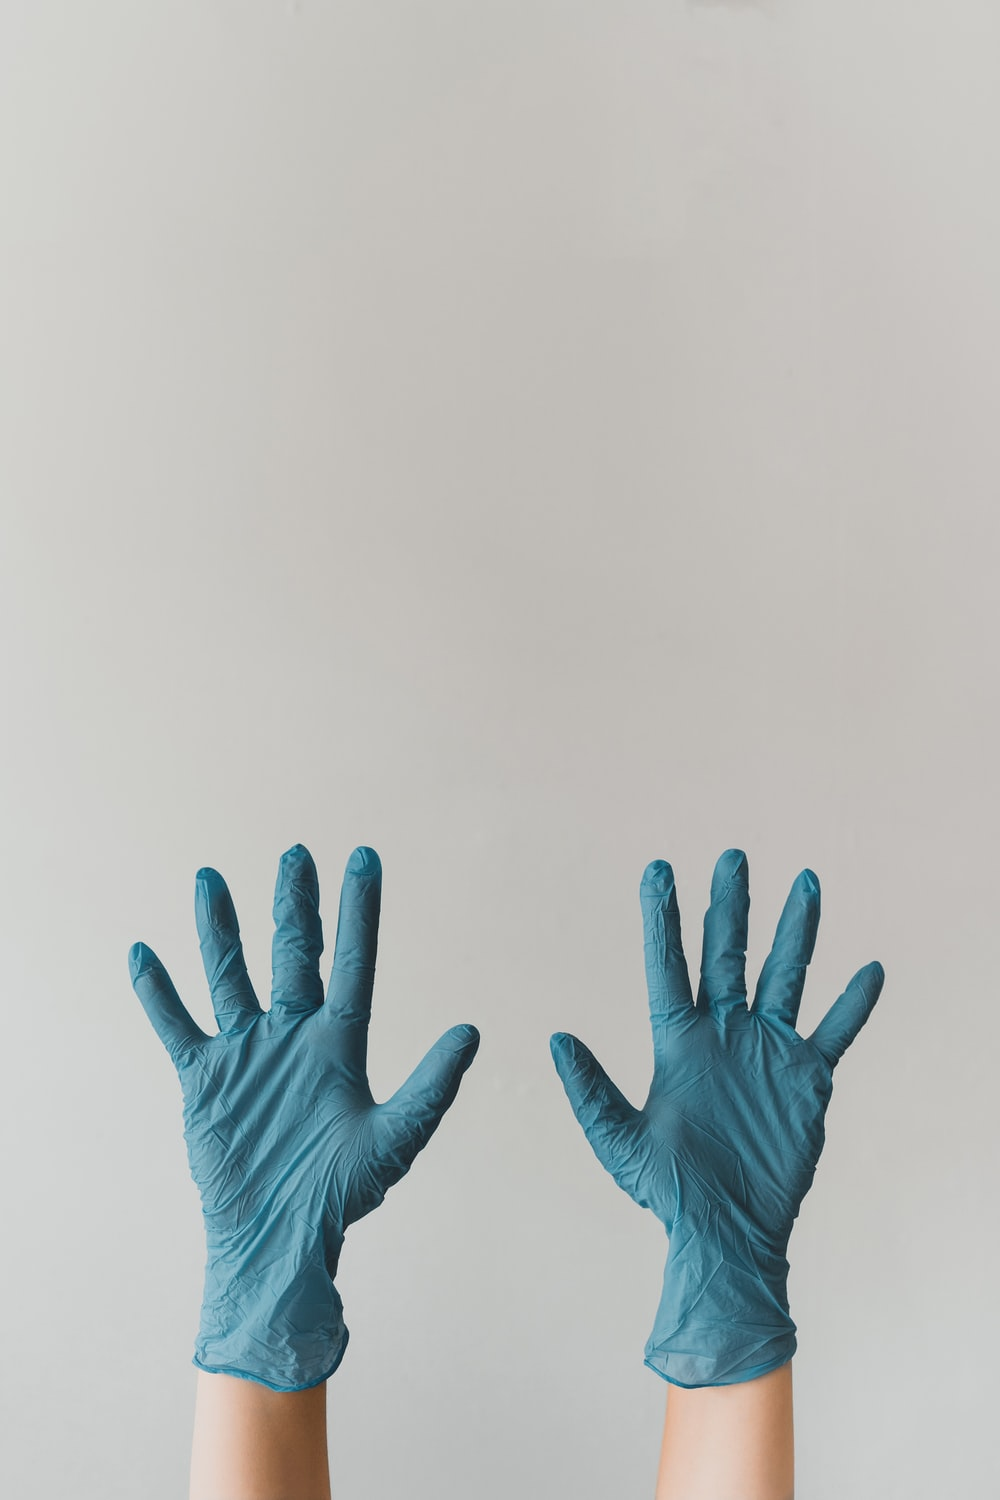 persons left hand with white background